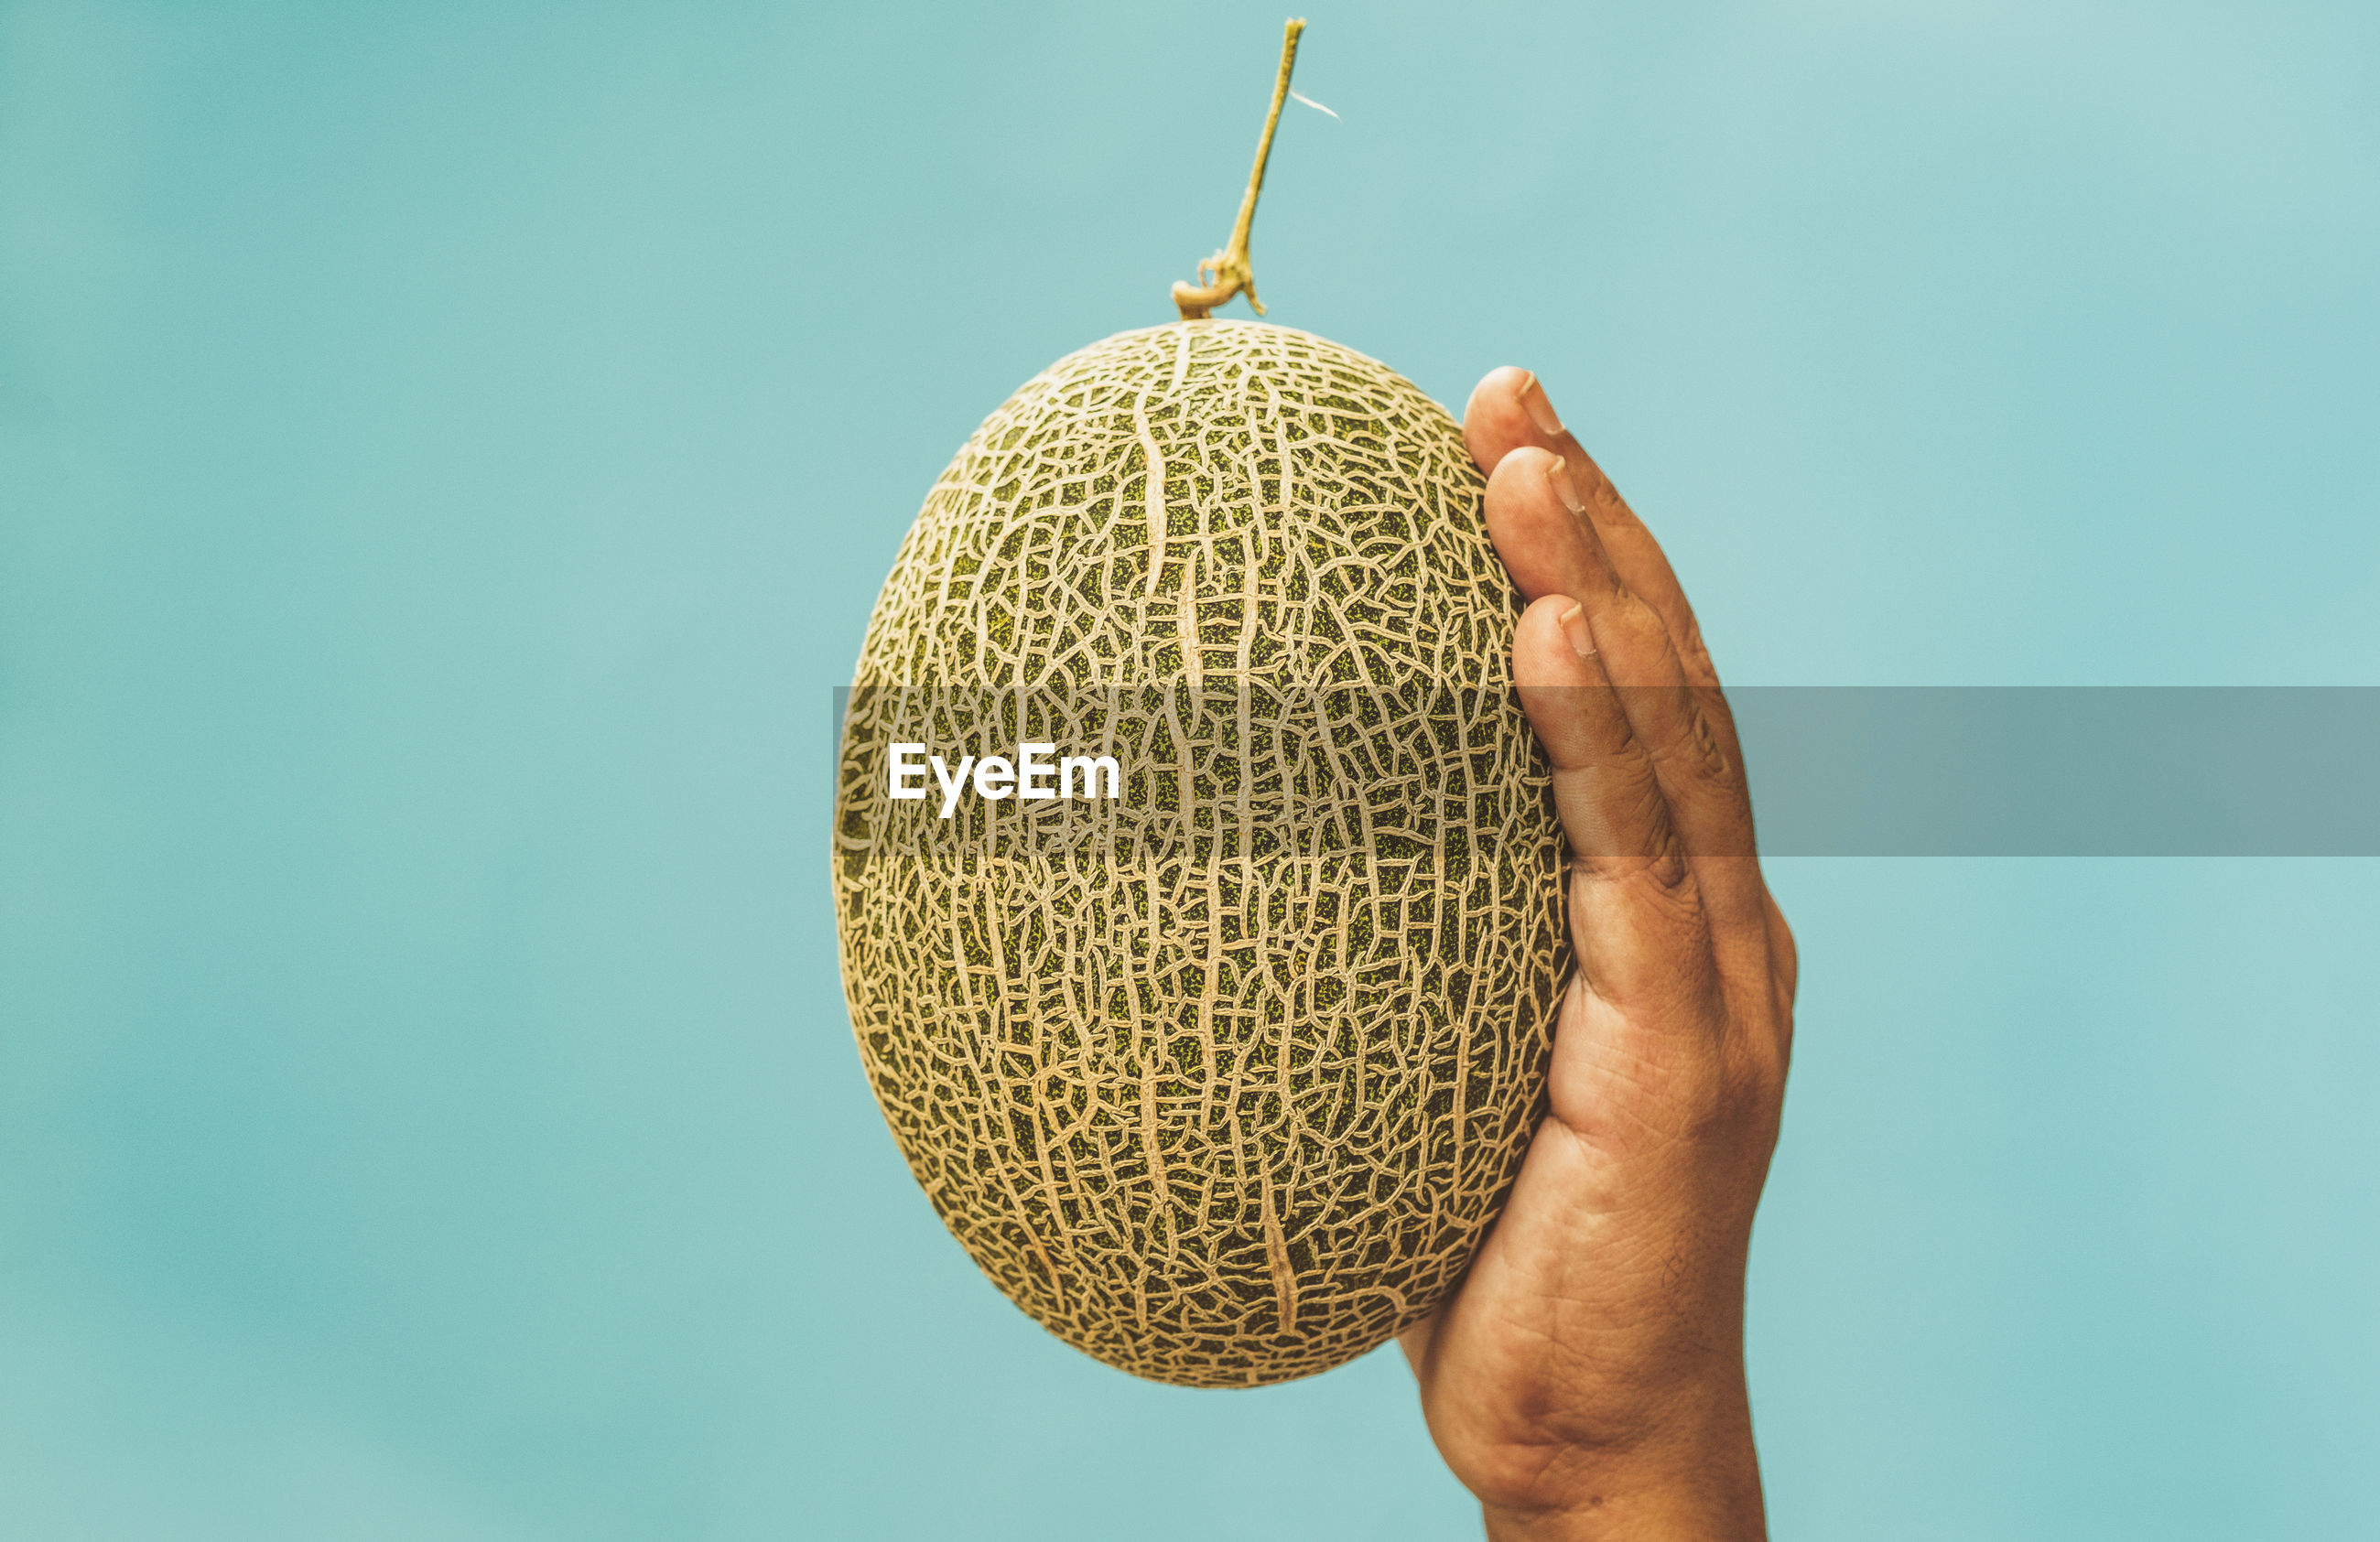 Close-up of hand holding melon fruit